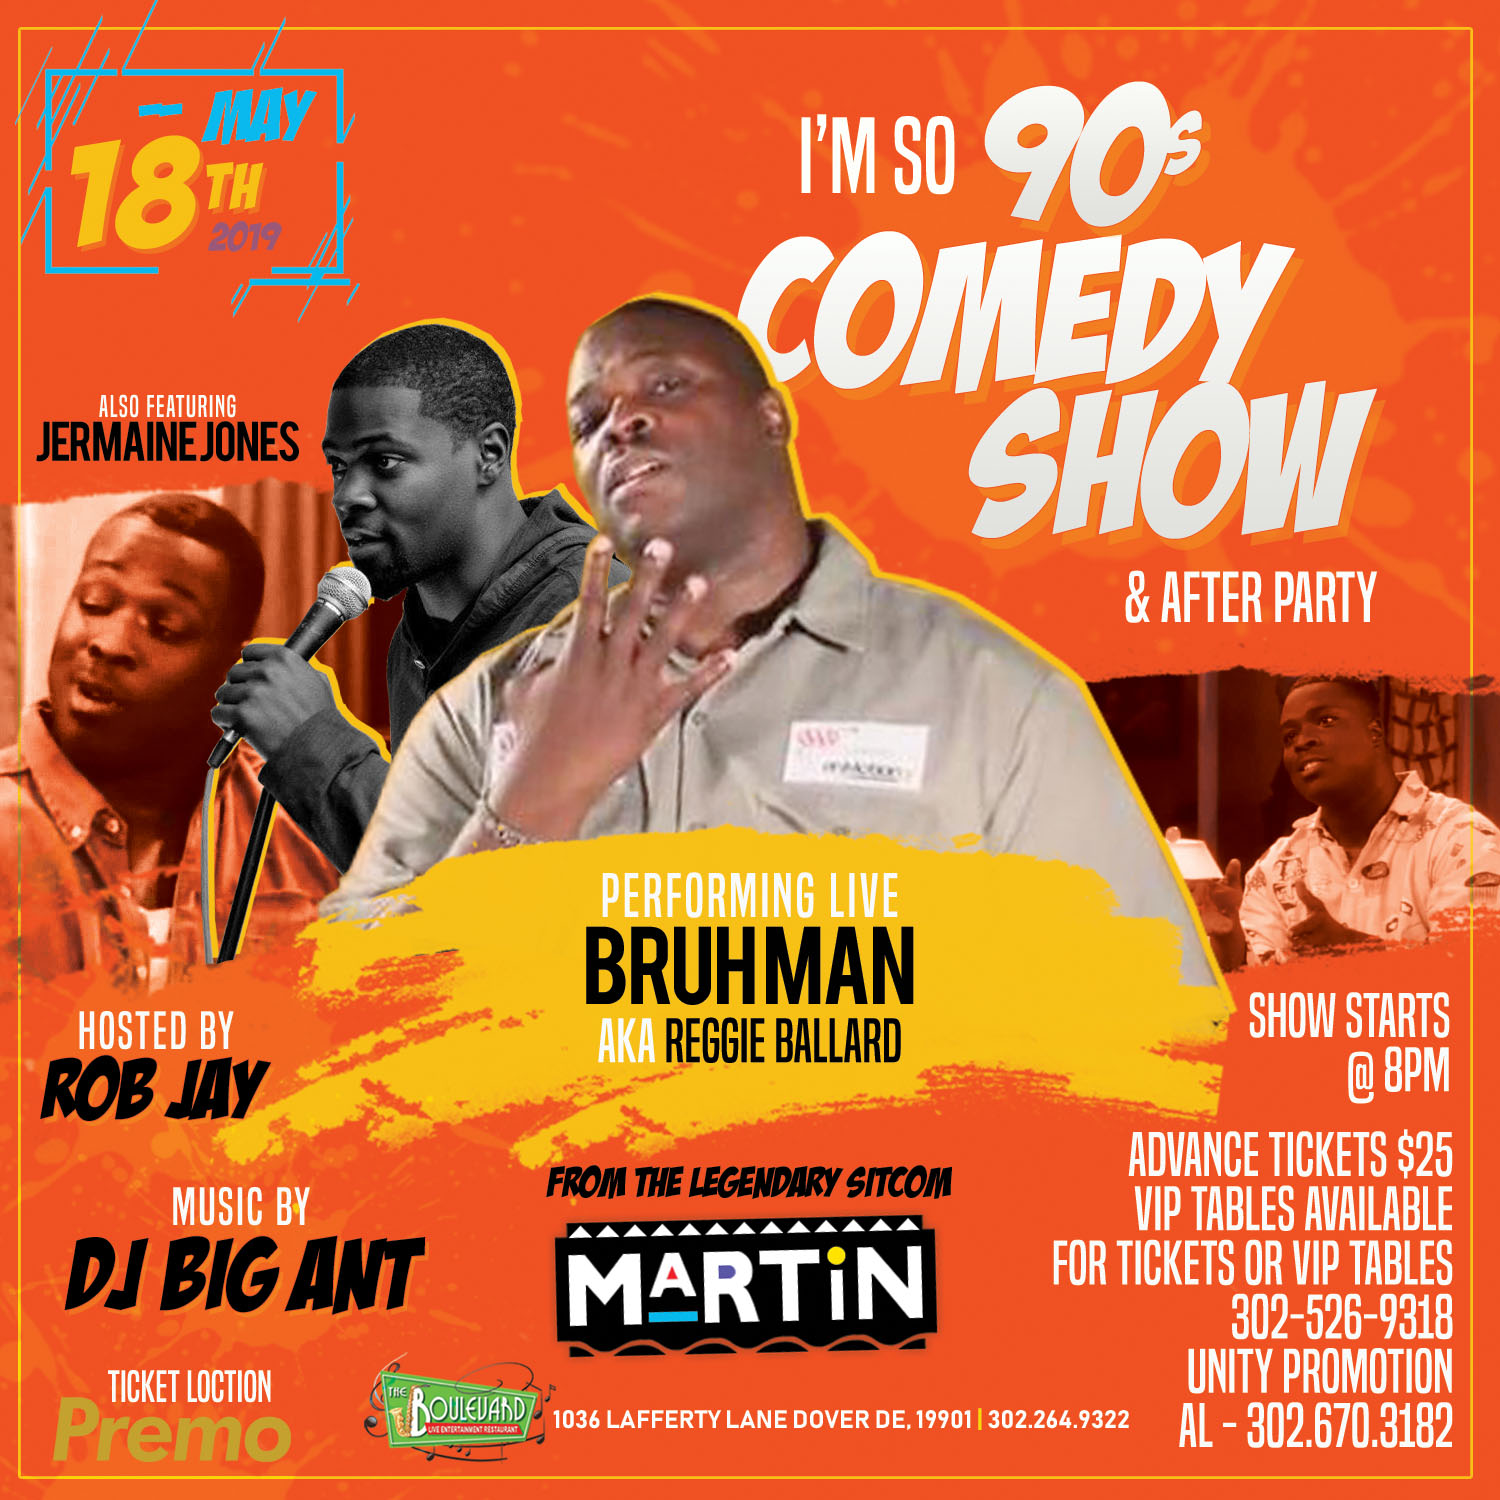 I'M 90s COMEDY SHOW & AFTER PARTY